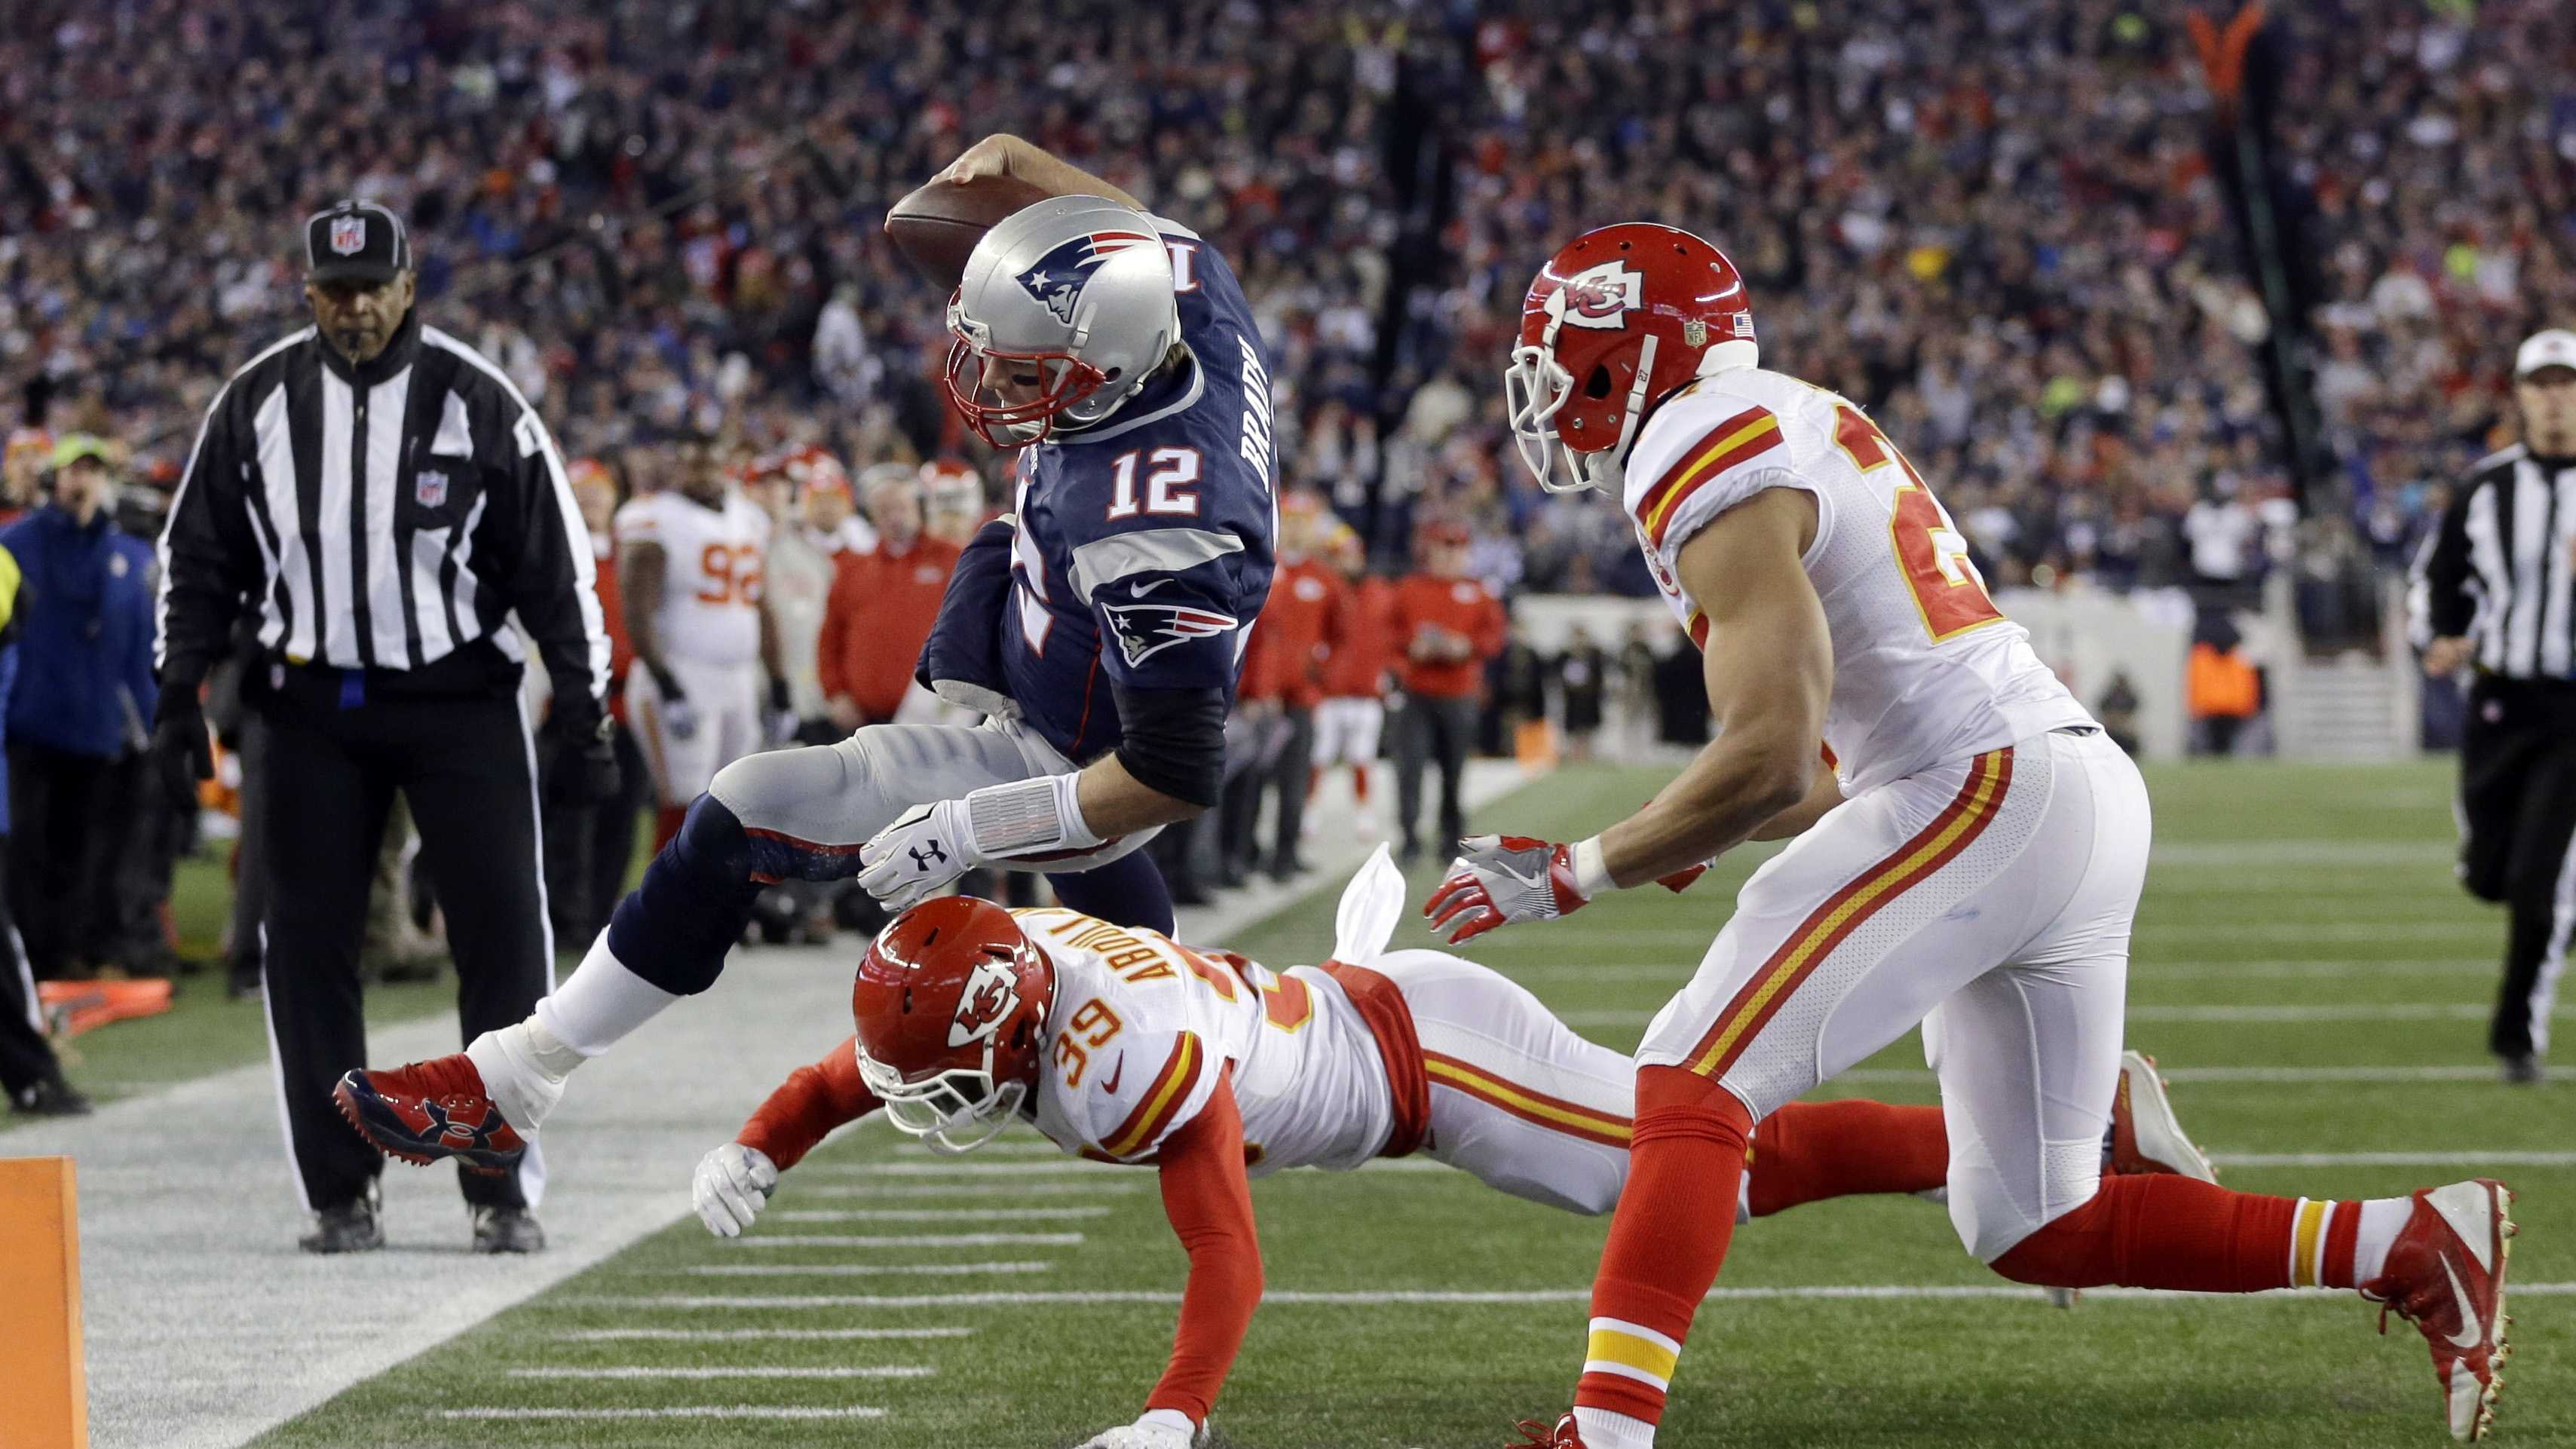 Kansas City Chiefs free safety Husain Abdullah (39) pushes New England Patriots quarterback Tom Brady (12) out of bounds short of the goal line in the first half of an NFL divisional playoff football game, Saturday, Jan. 16, 2016, in Foxborough, Mass.